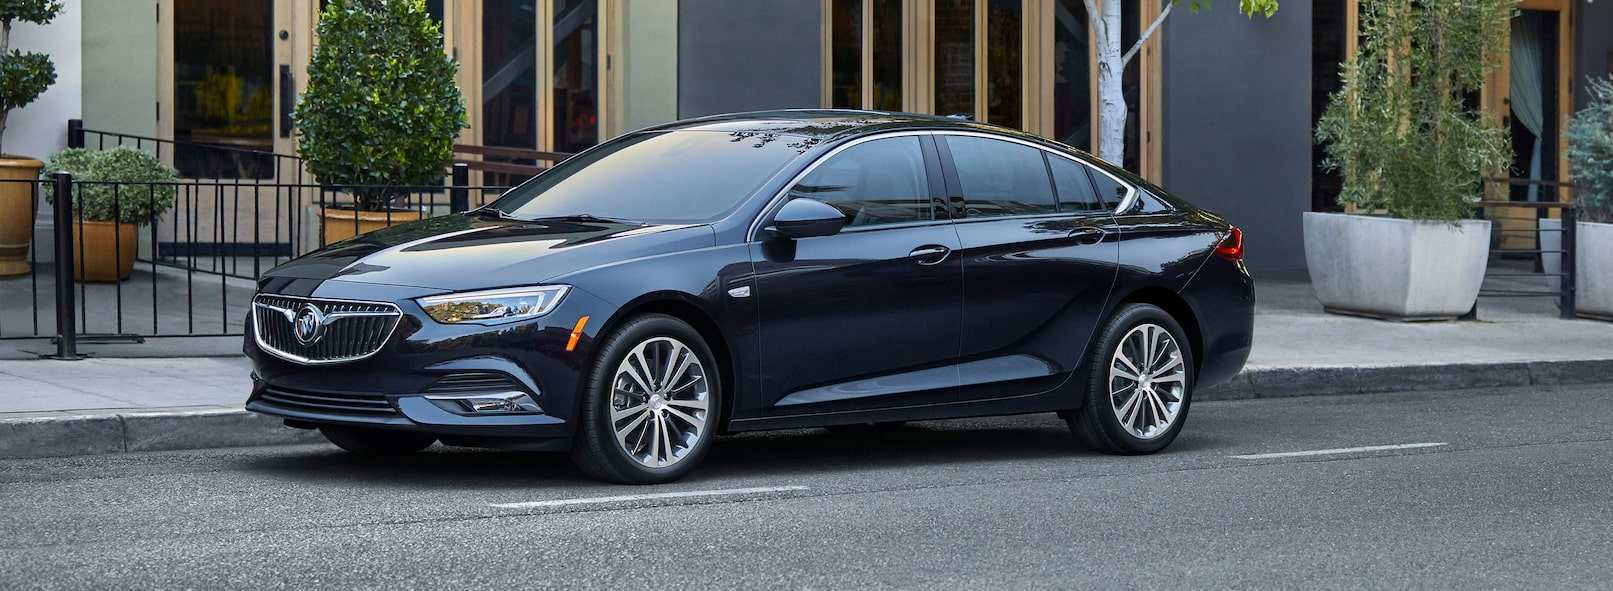 79 The Best 2019 Buick Regal New Review